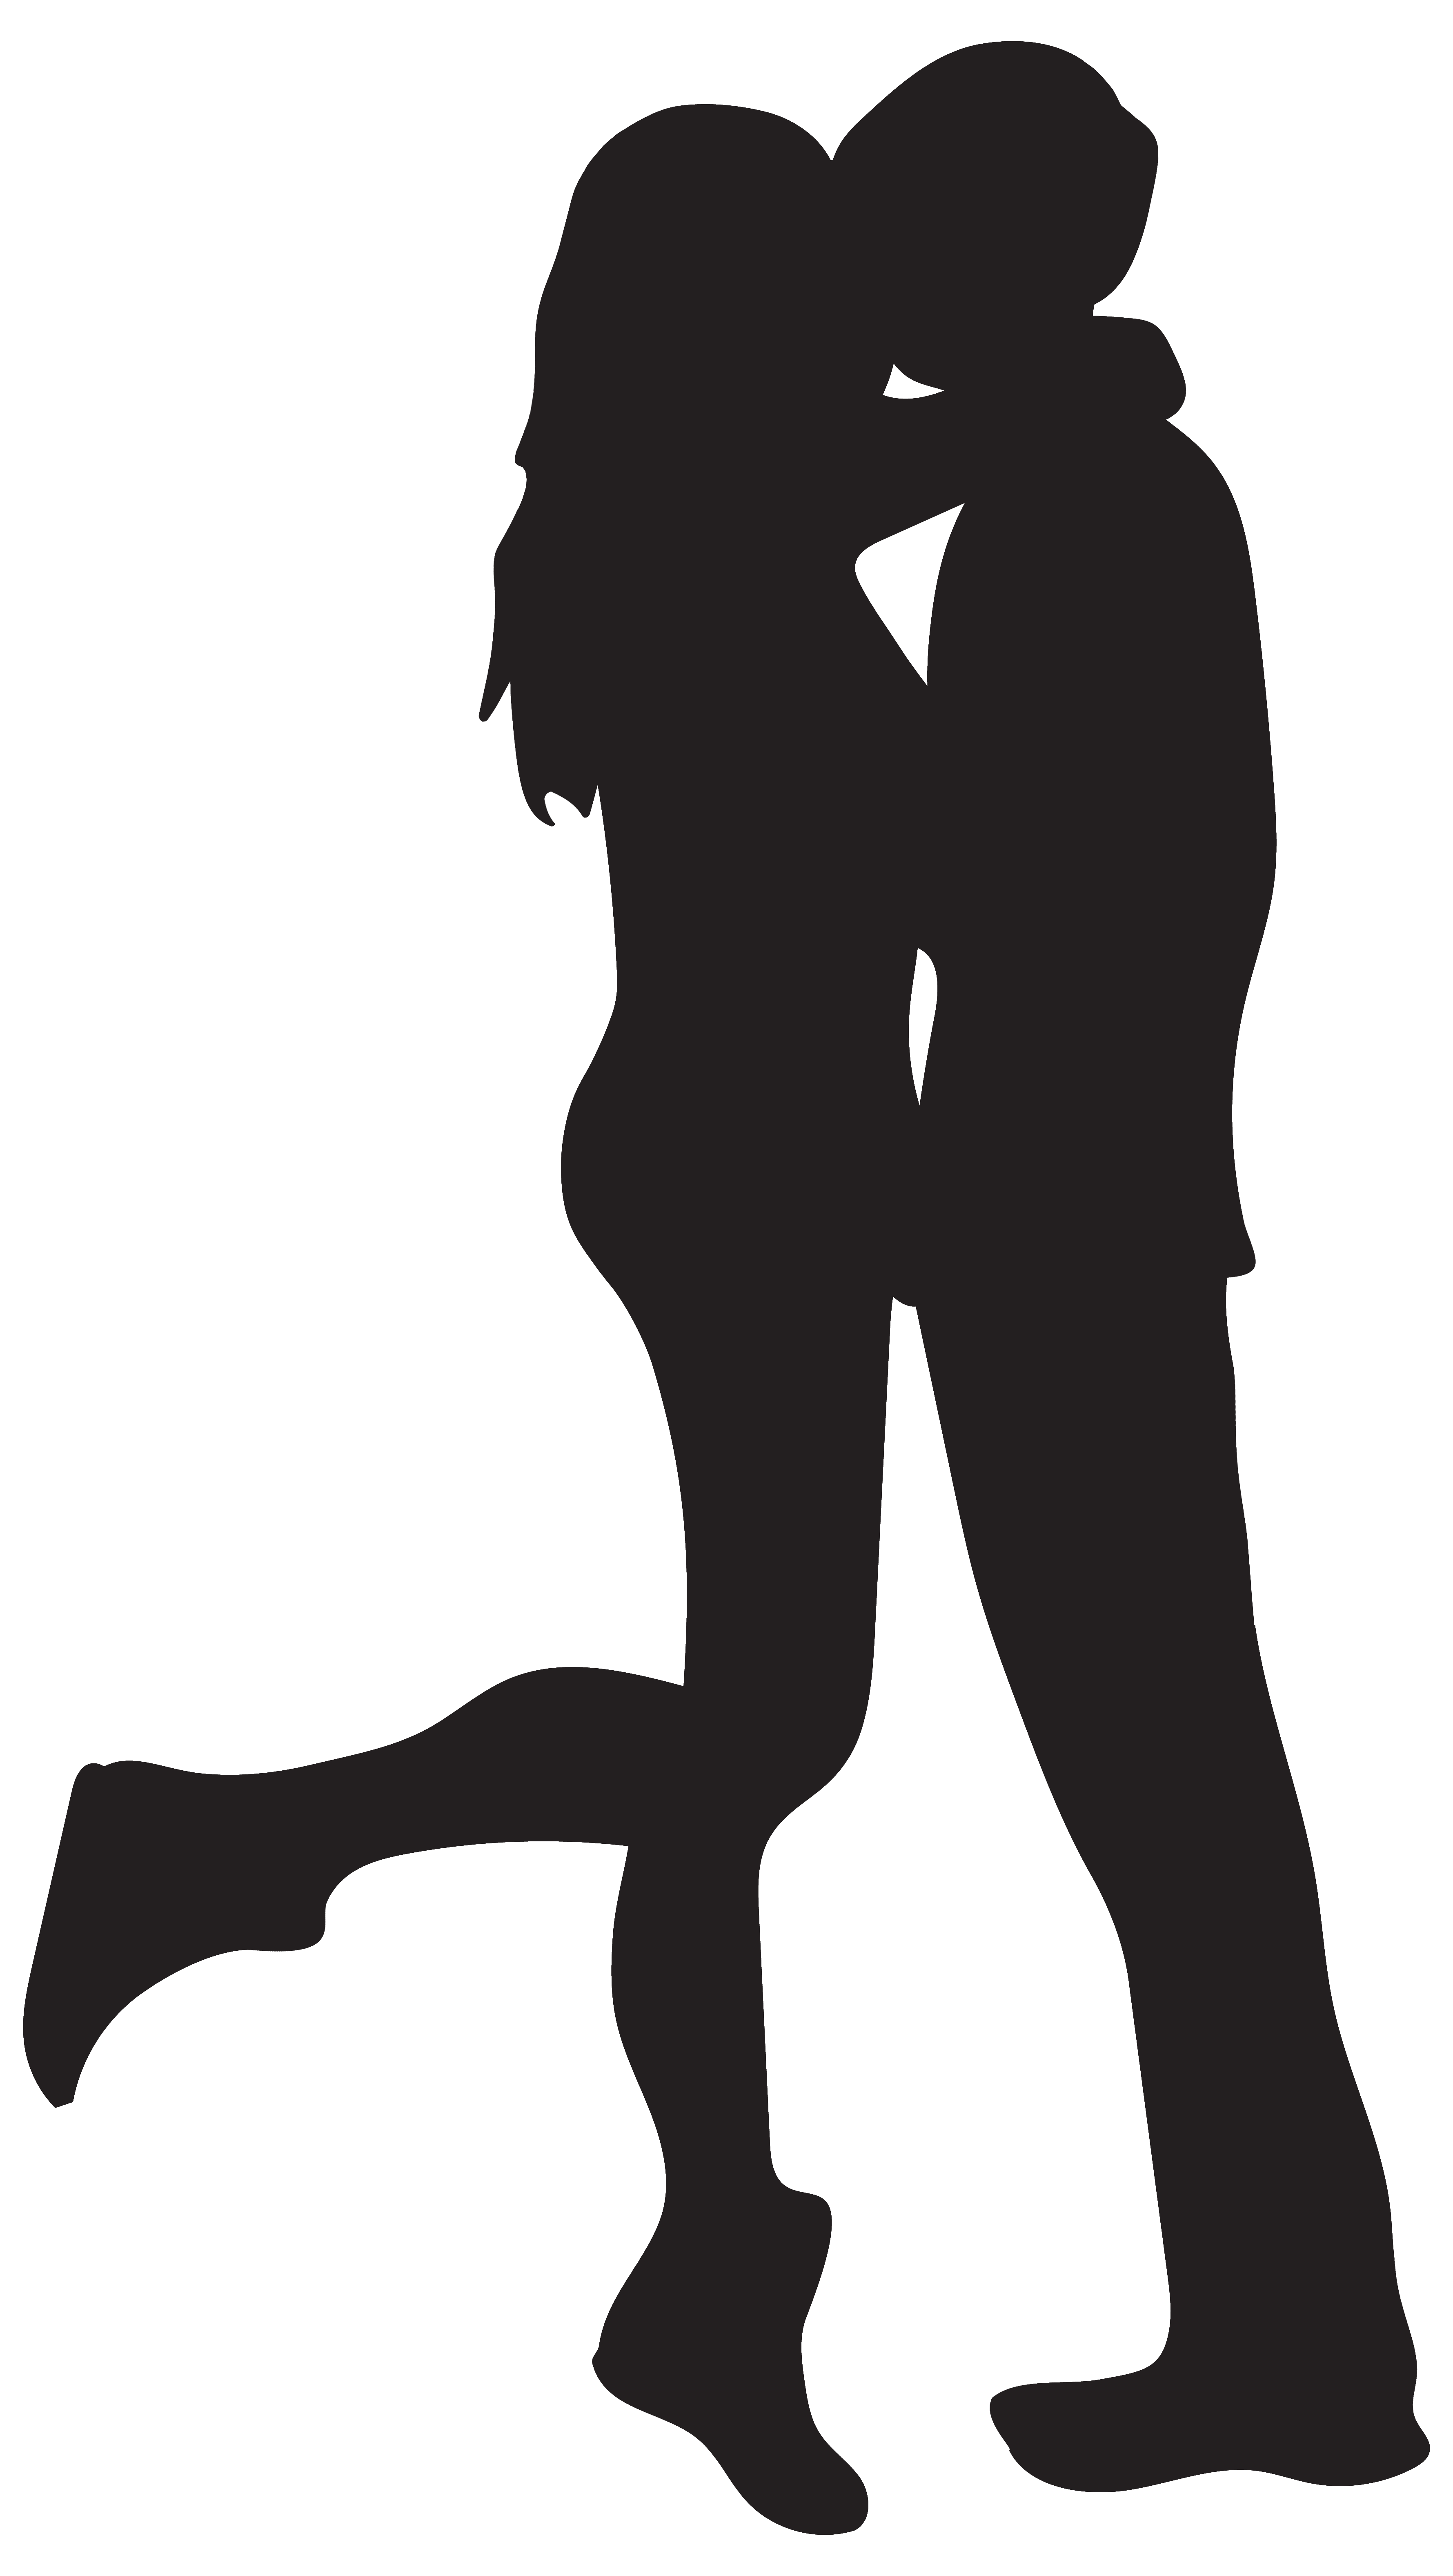 Kissing couple silhouettes png. Kiss clipart man